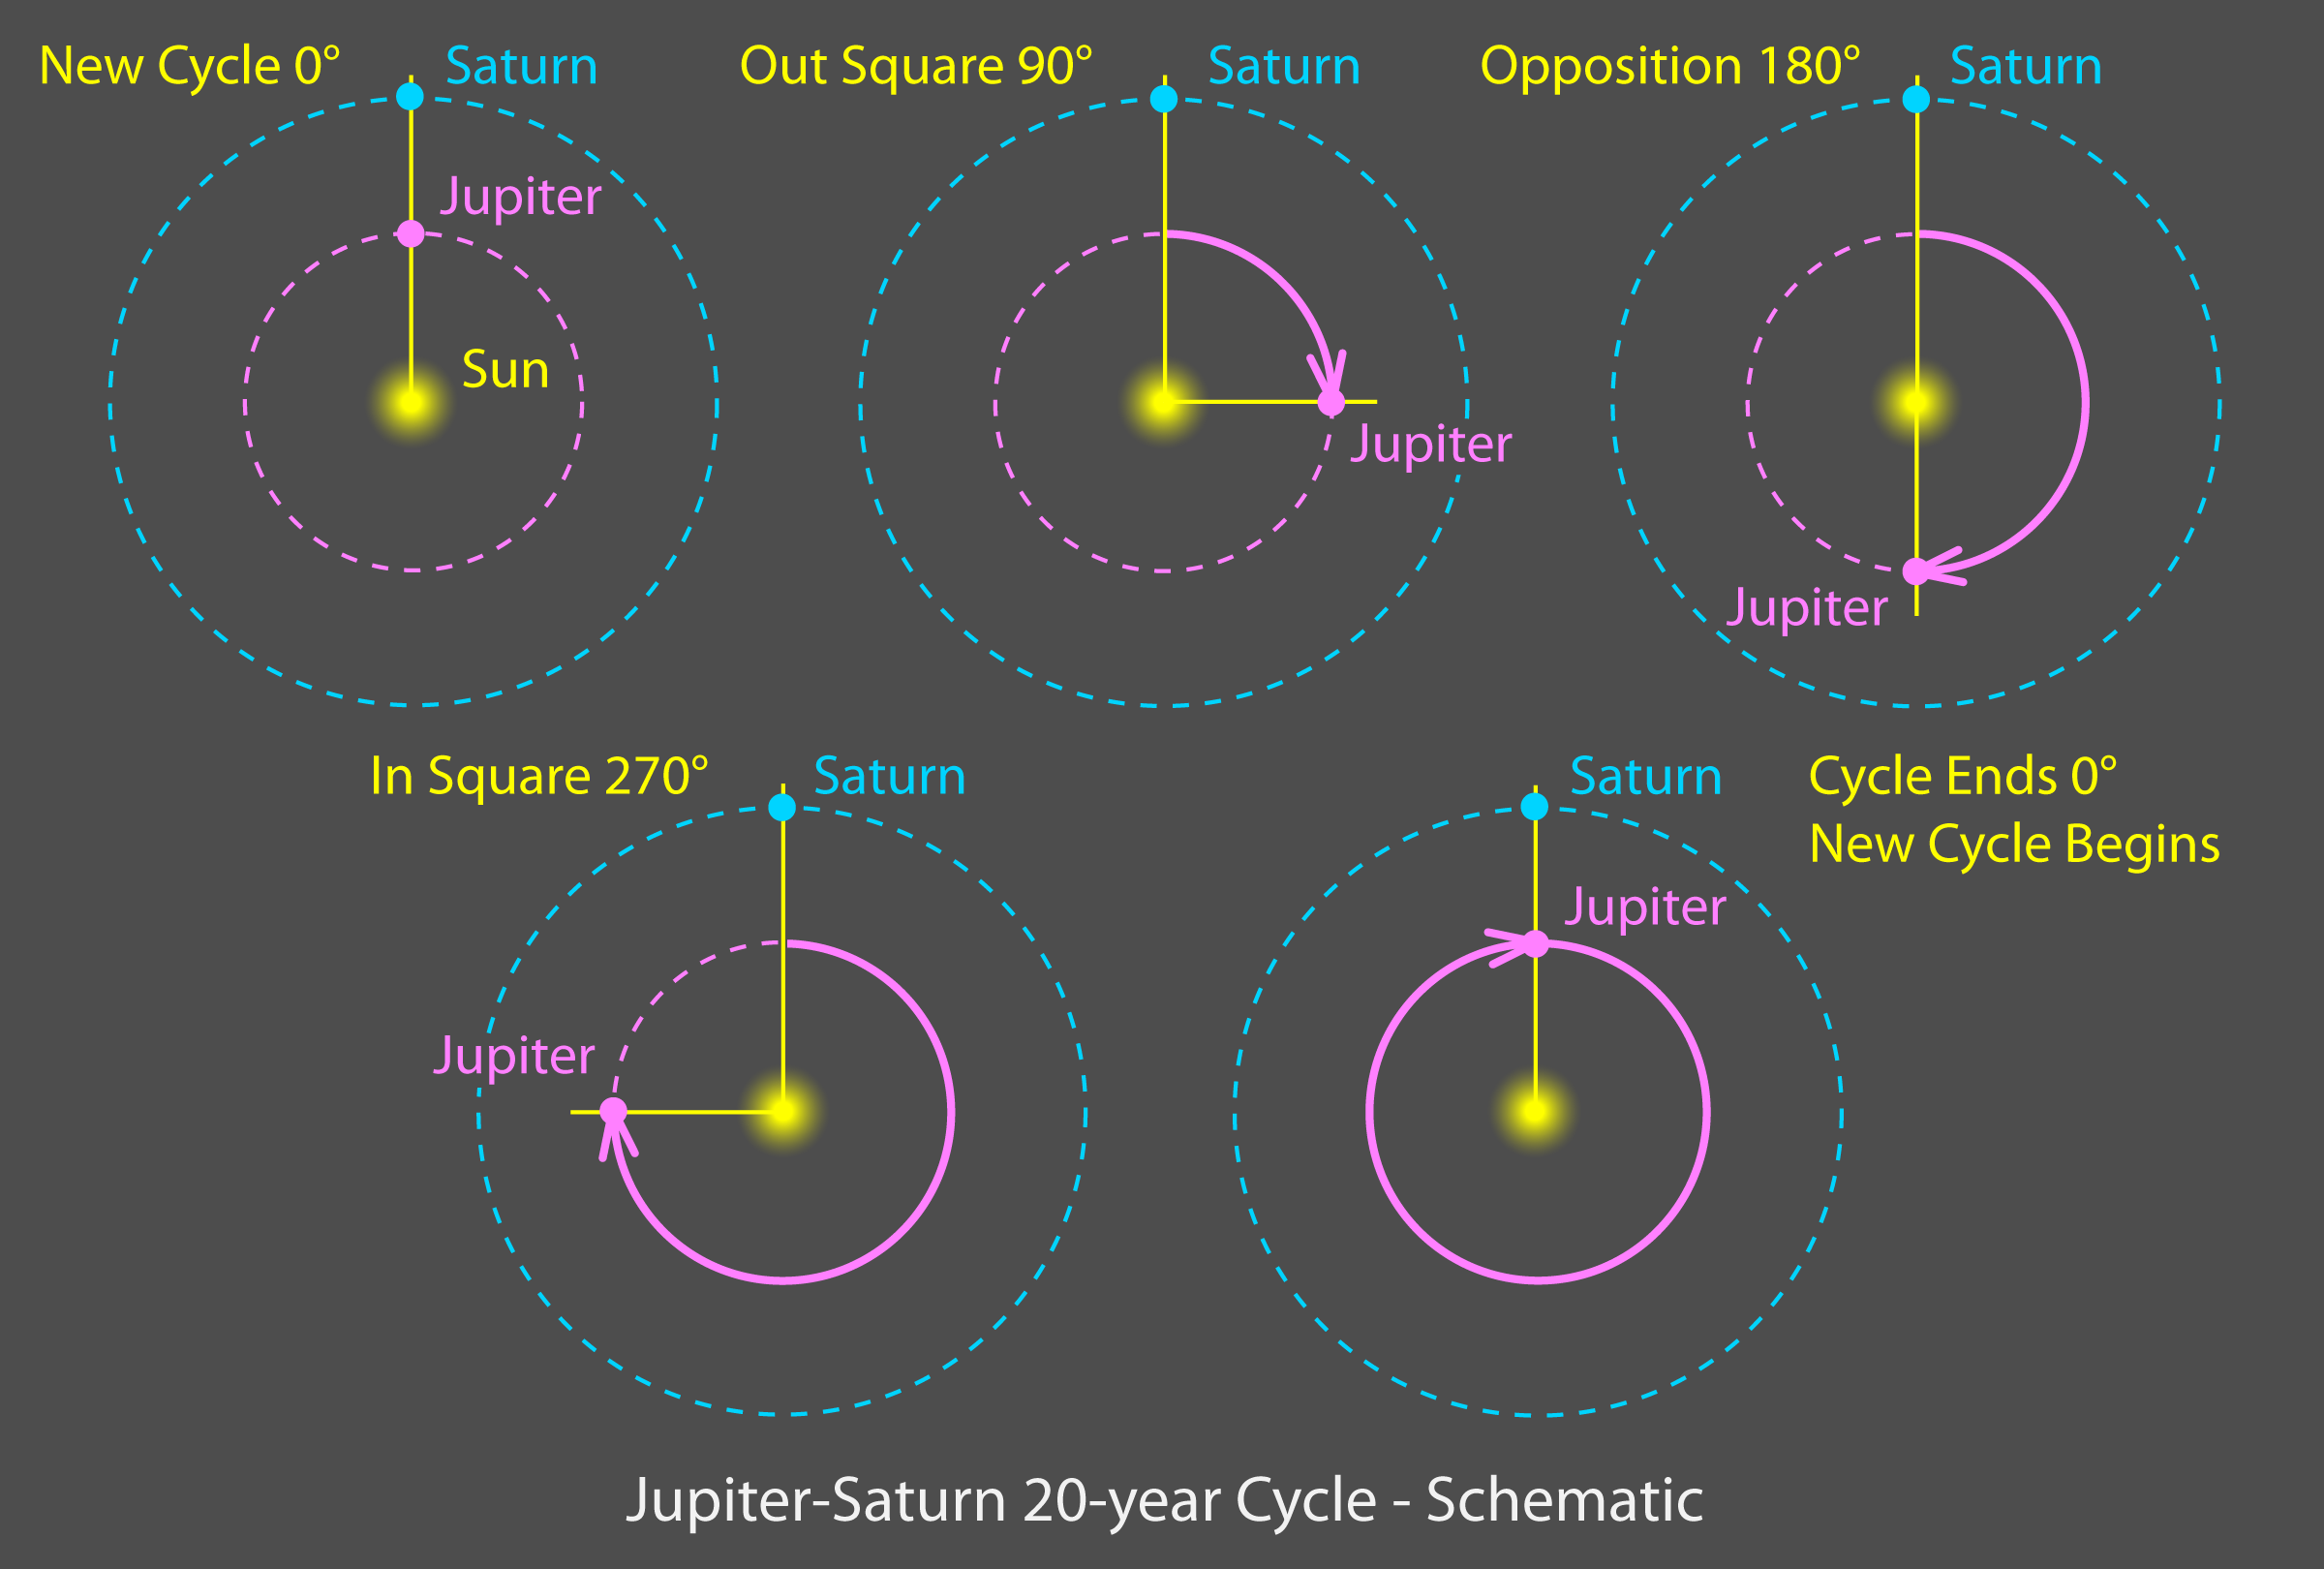 Jup-Sat-Cycle-Schematic copy